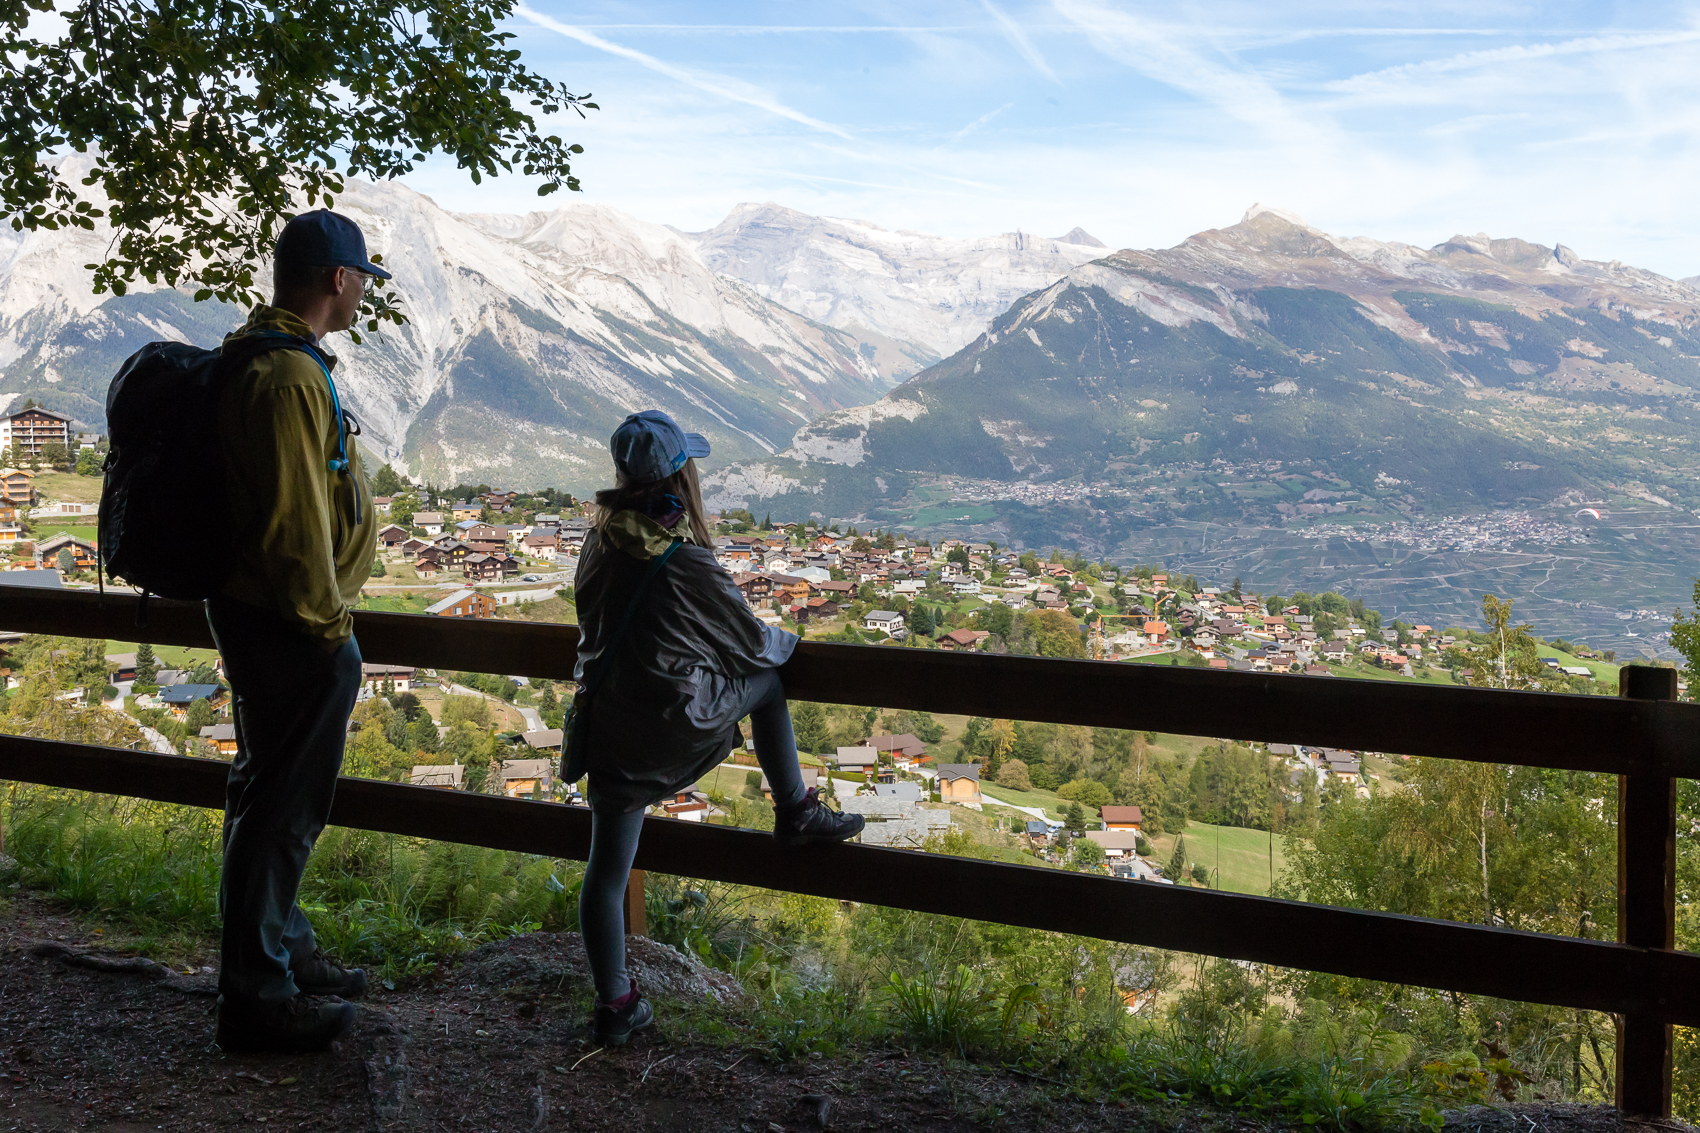 """Being invited out to to go for a walk along the """"Bise"""" waterways/canals up in the mountains that knit agricultural land together allowed for the most amazing views and a reminder of our mountains back home - minus the villages attached to cliff walls…we don't have those…unless you count the wall hanging bivouac sites.."""